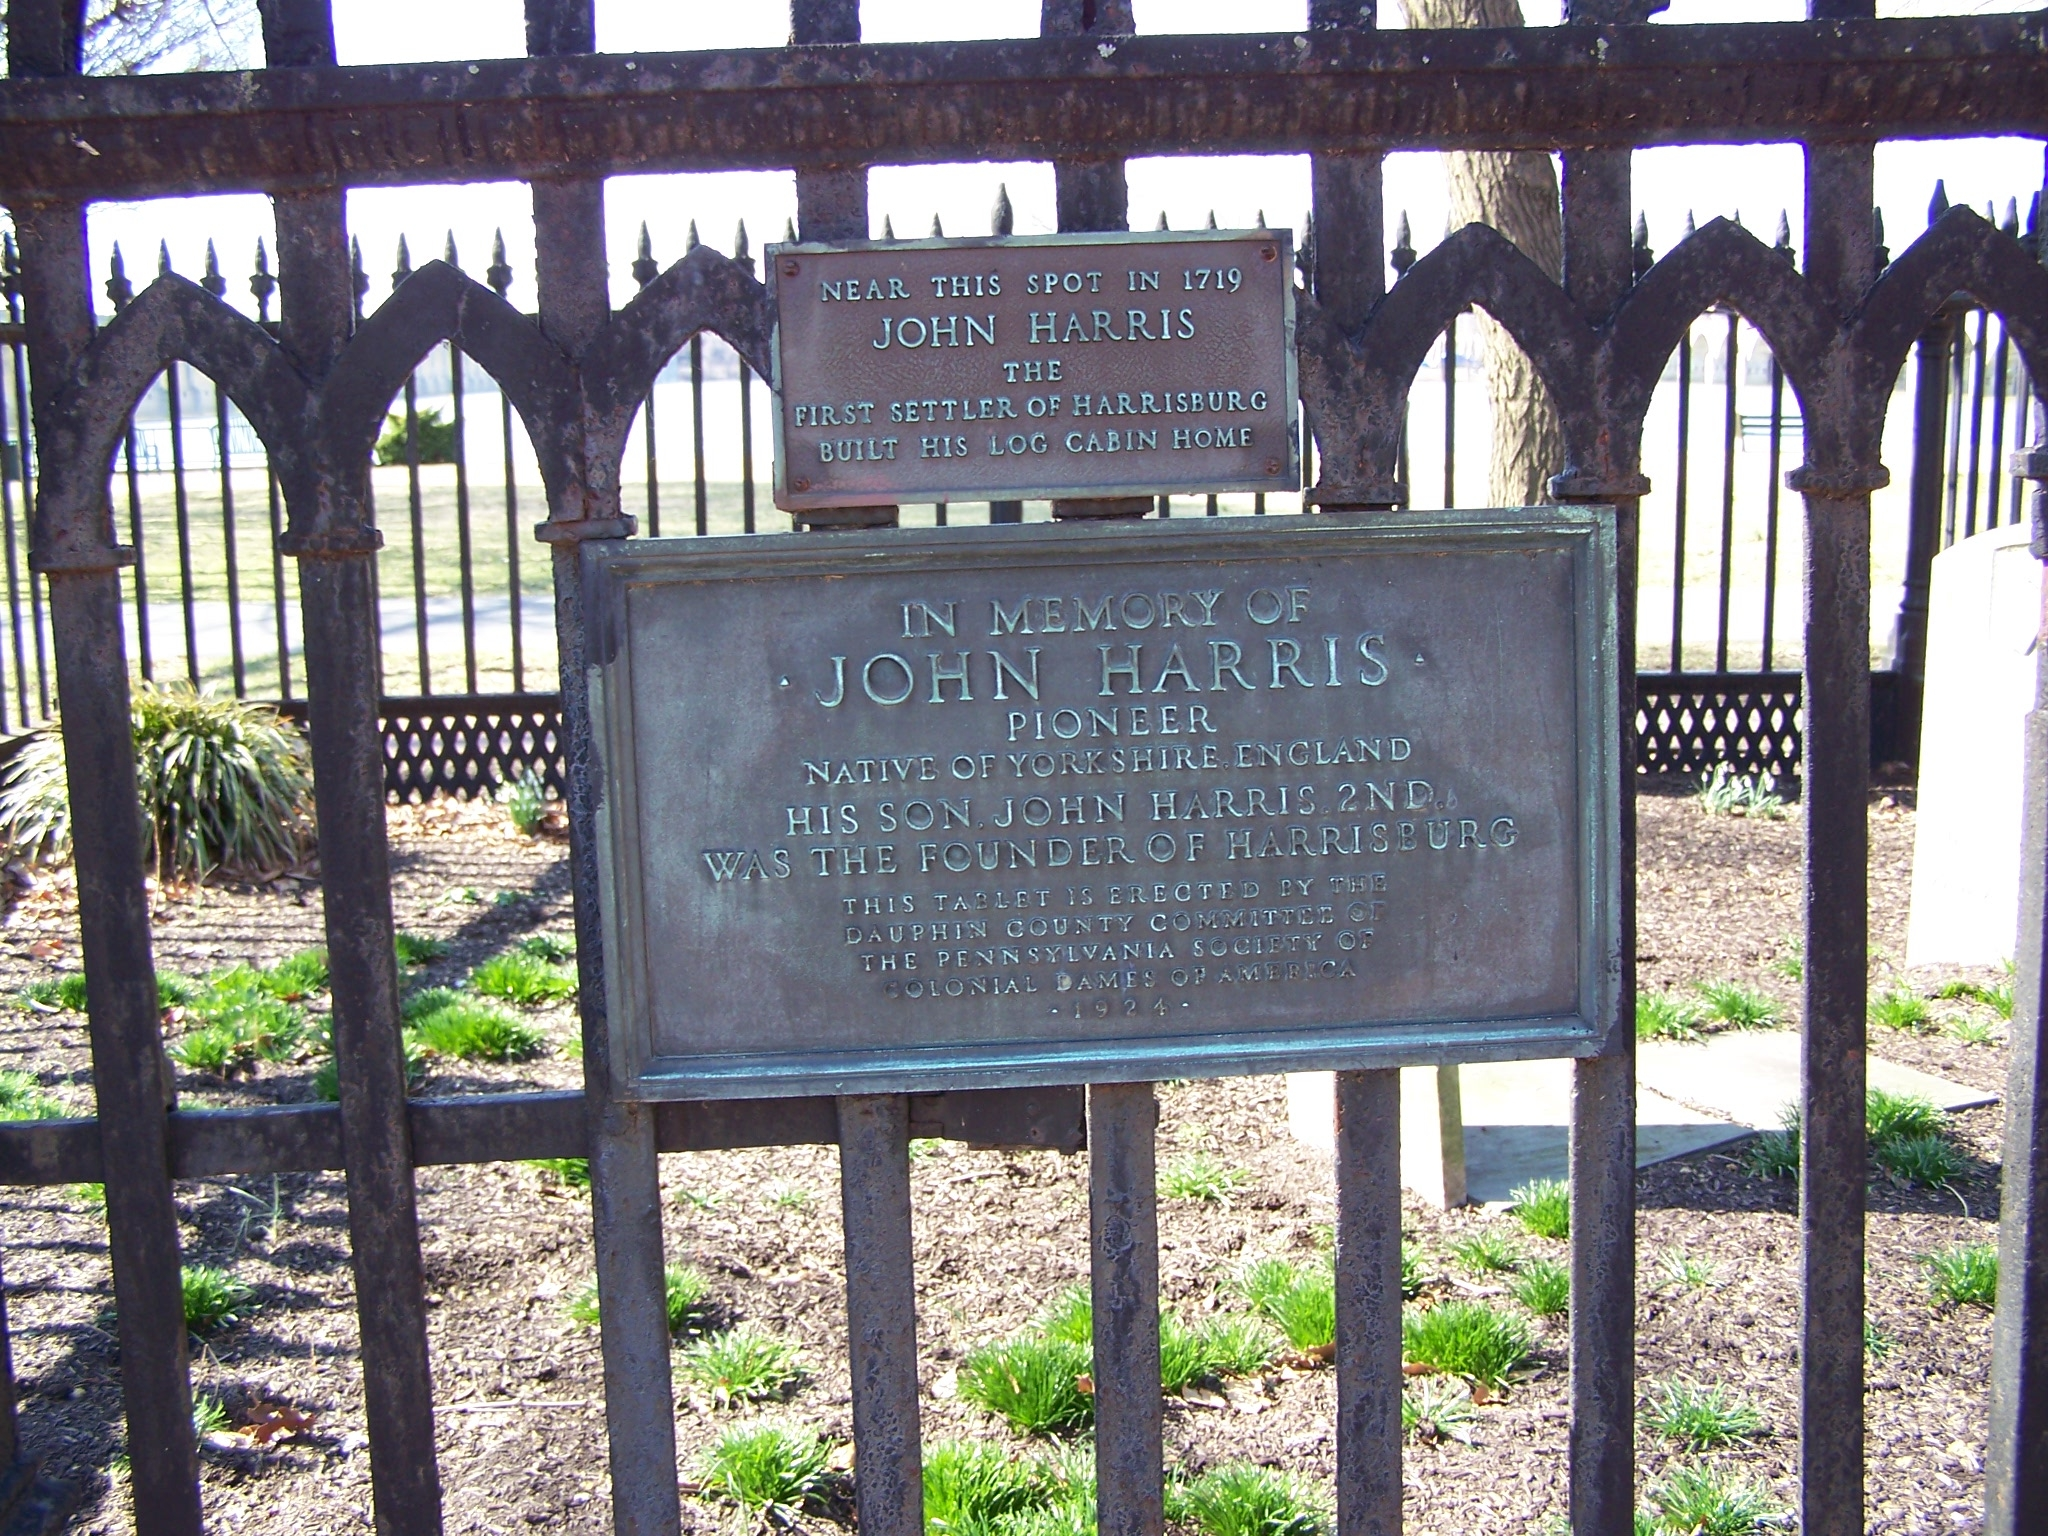 Plaques on burial plot fence